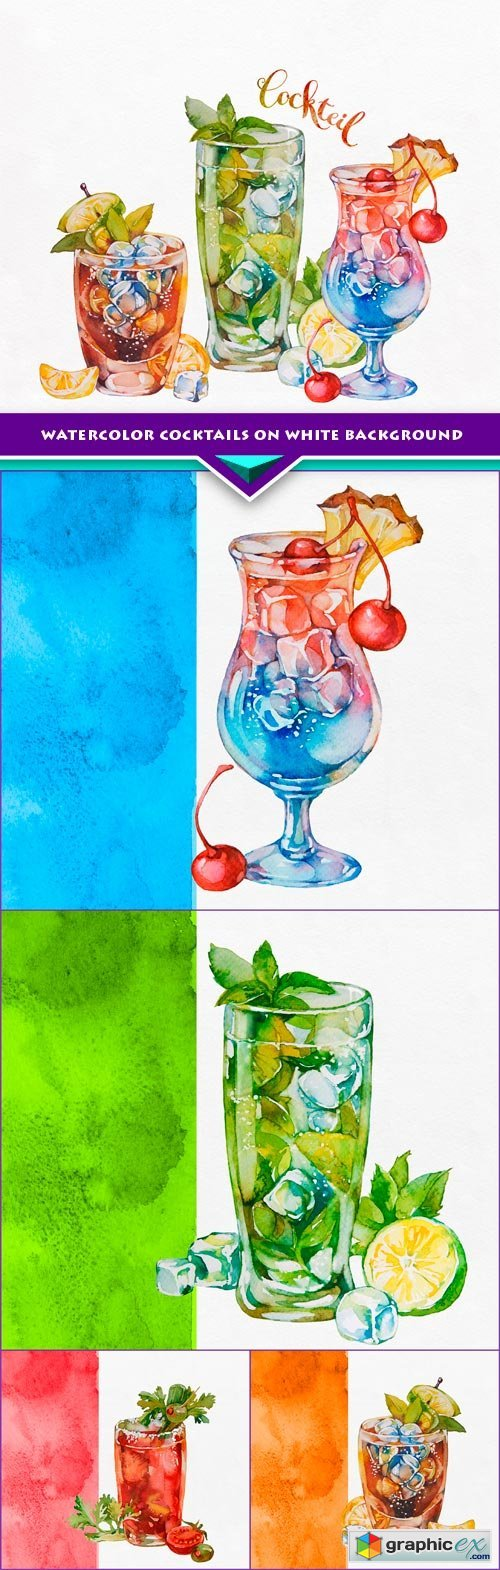 Watercolor cocktails on white background 5x EPS